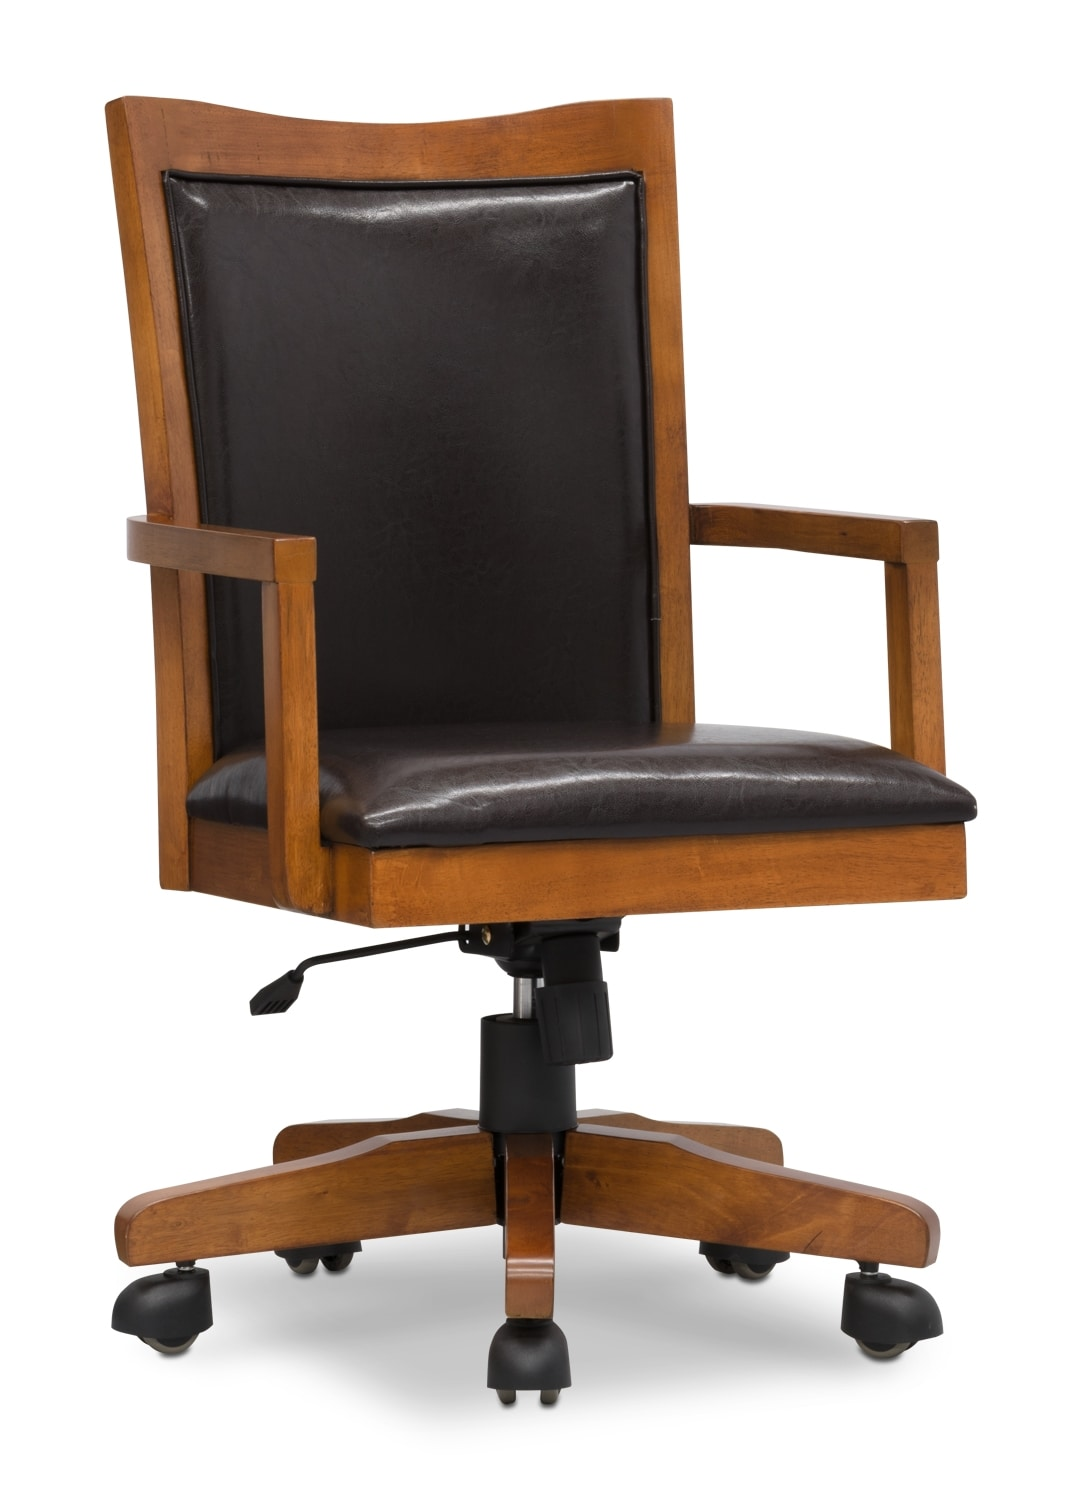 Carson Wood-Trim Office Chair